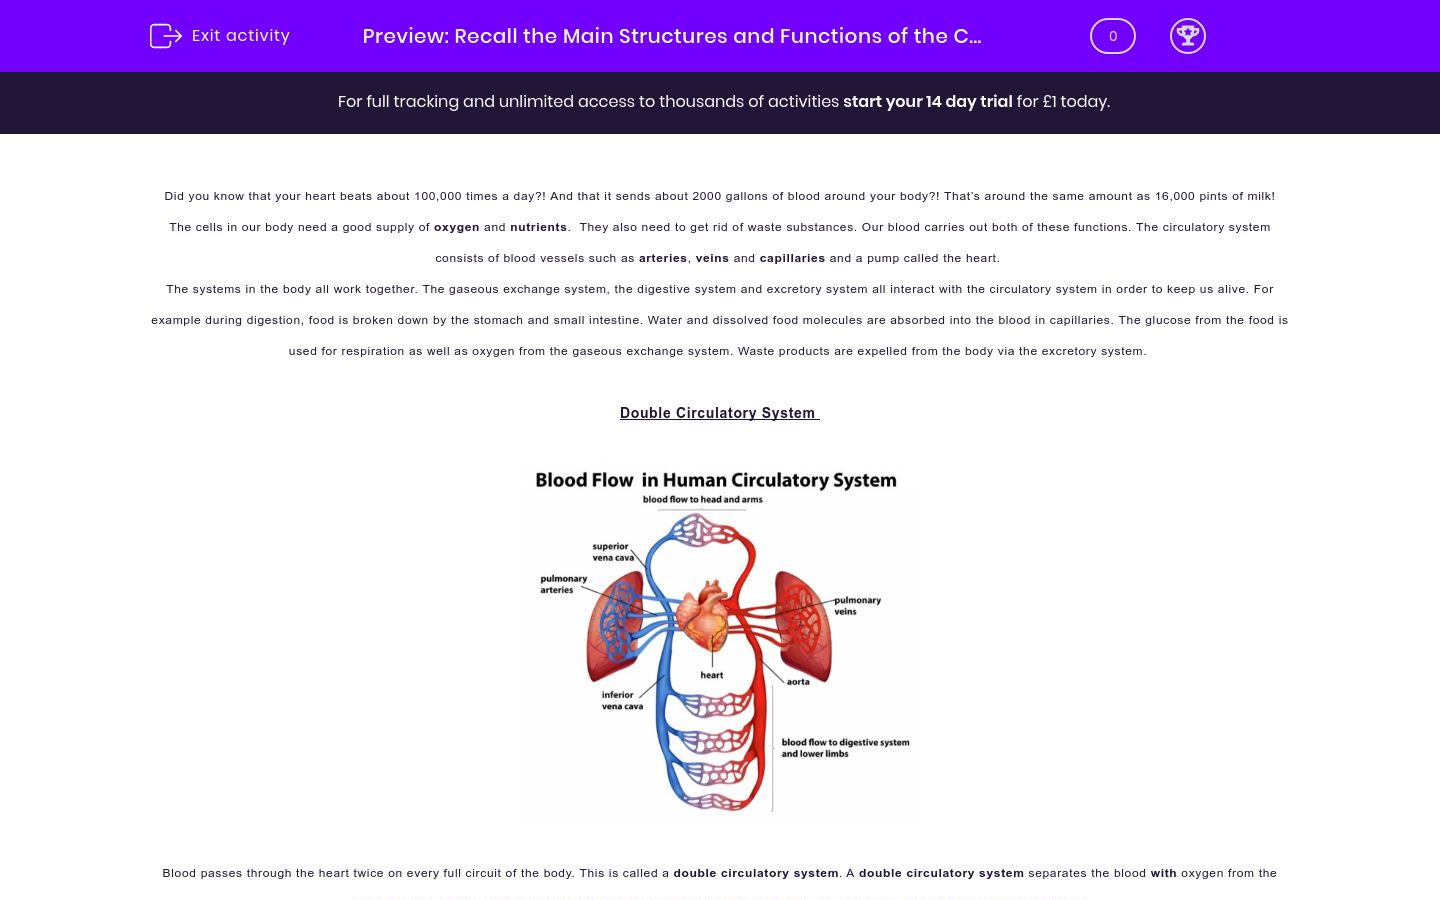 'Understand the Main Structures and Functions of the Circulatory System' worksheet